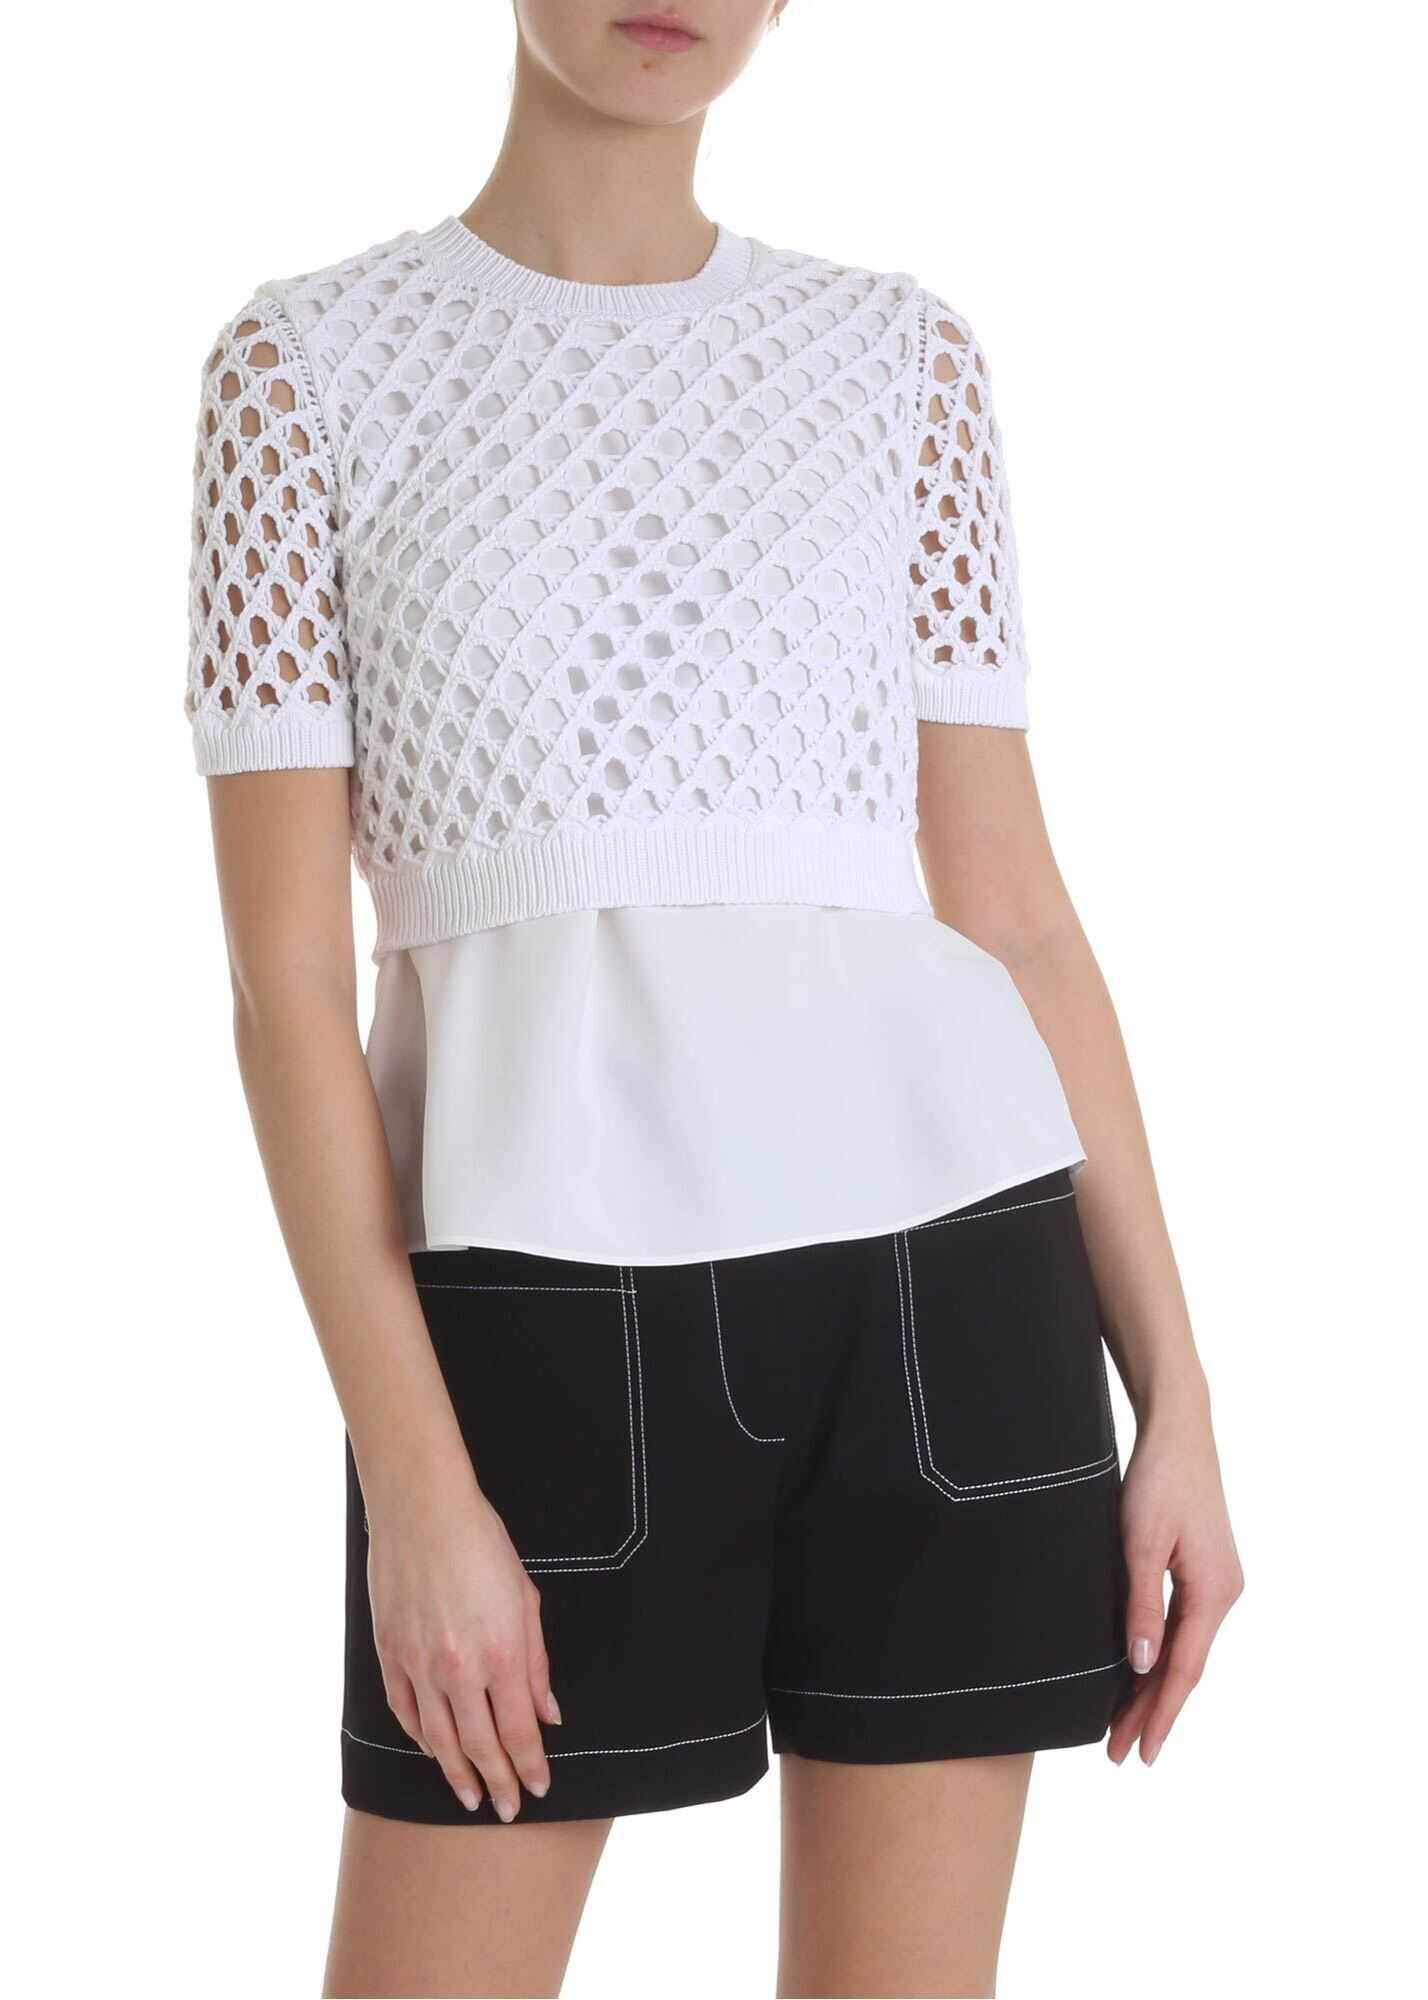 Viscose And Crochet White Top